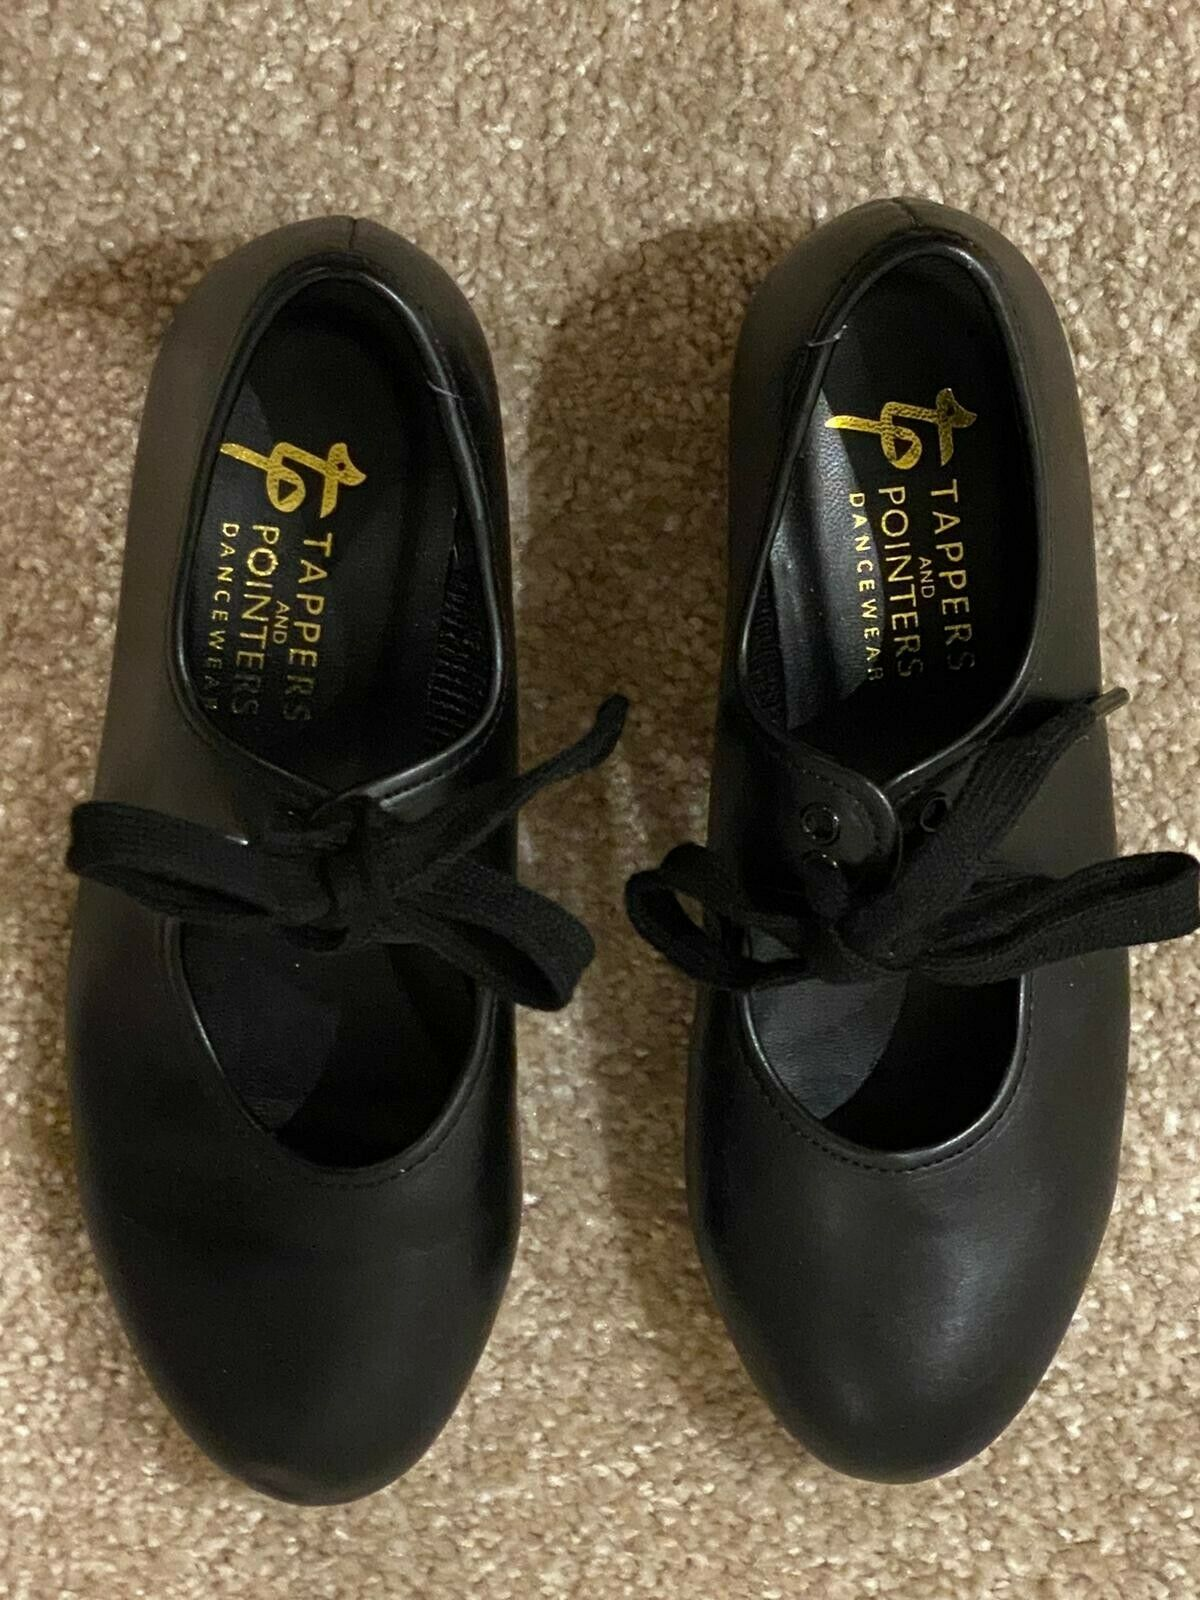 Girls tap shoes size 13 1/2, black Excellent condition, worn just a few times